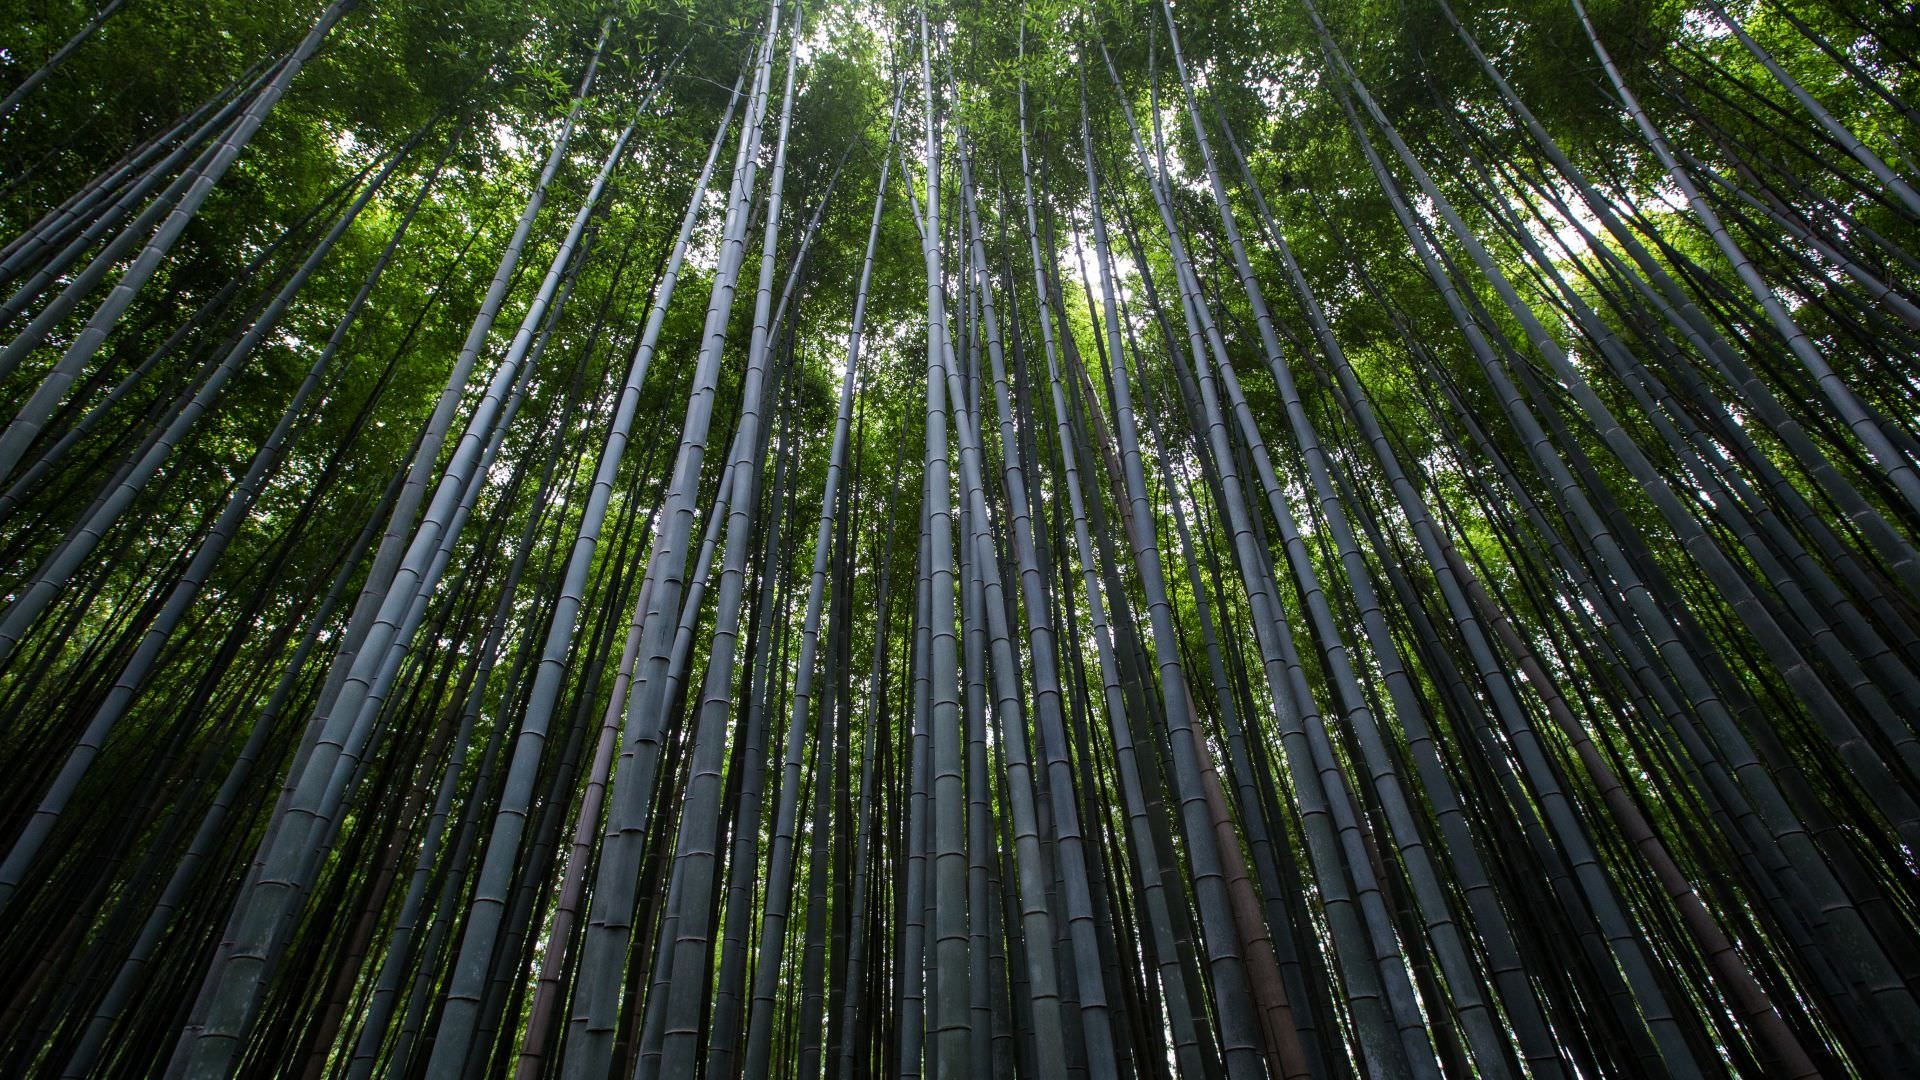 Bamboo Forest Background For Free